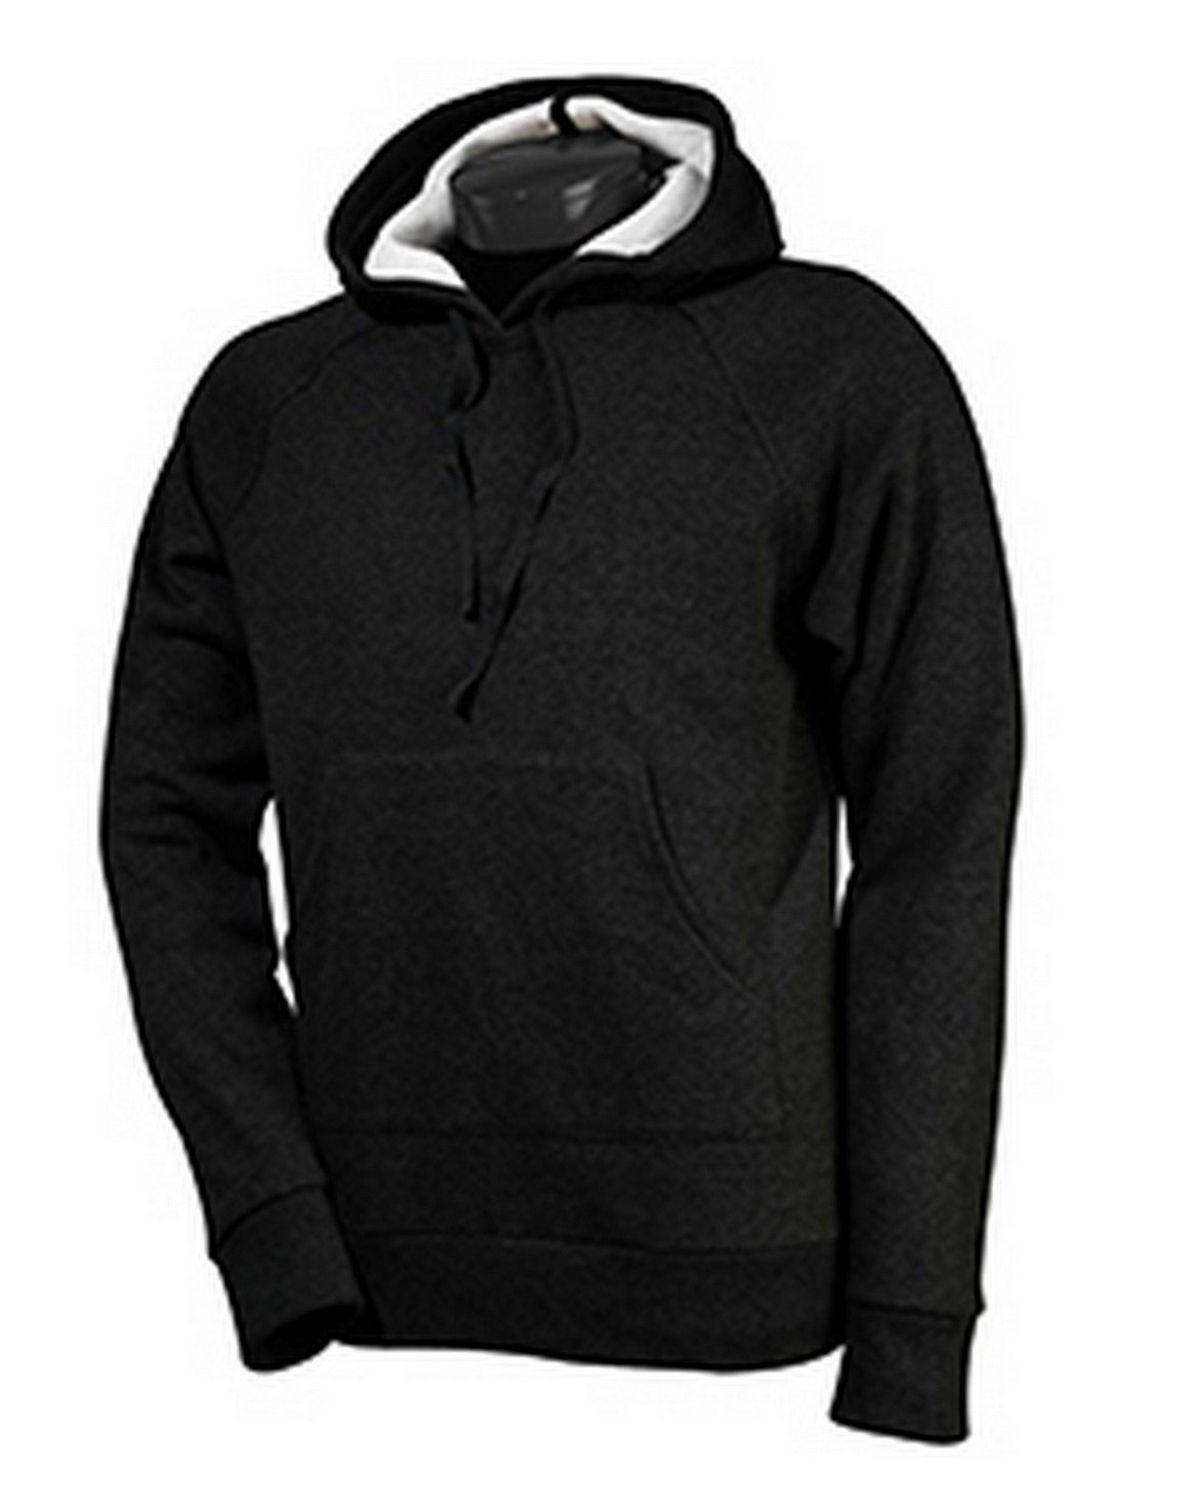 All Sport M4030 Performance Fleece Pullover Hoodie - Black - M M4030